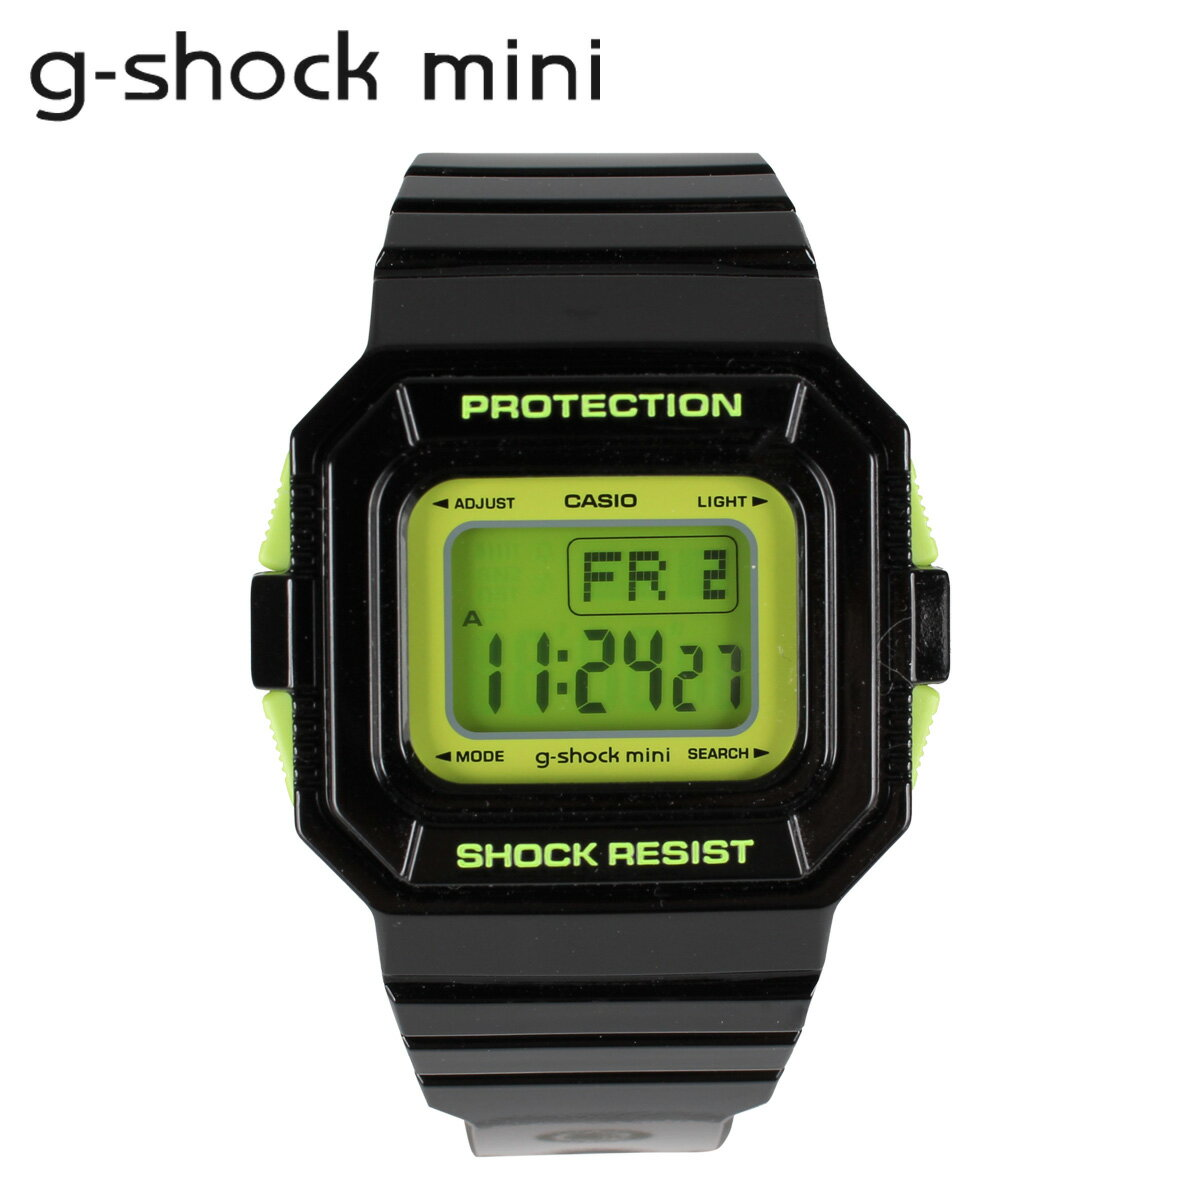 腕時計, レディース腕時計 600OFF CASIO g-shock mini GMN-550-1CJR G G-